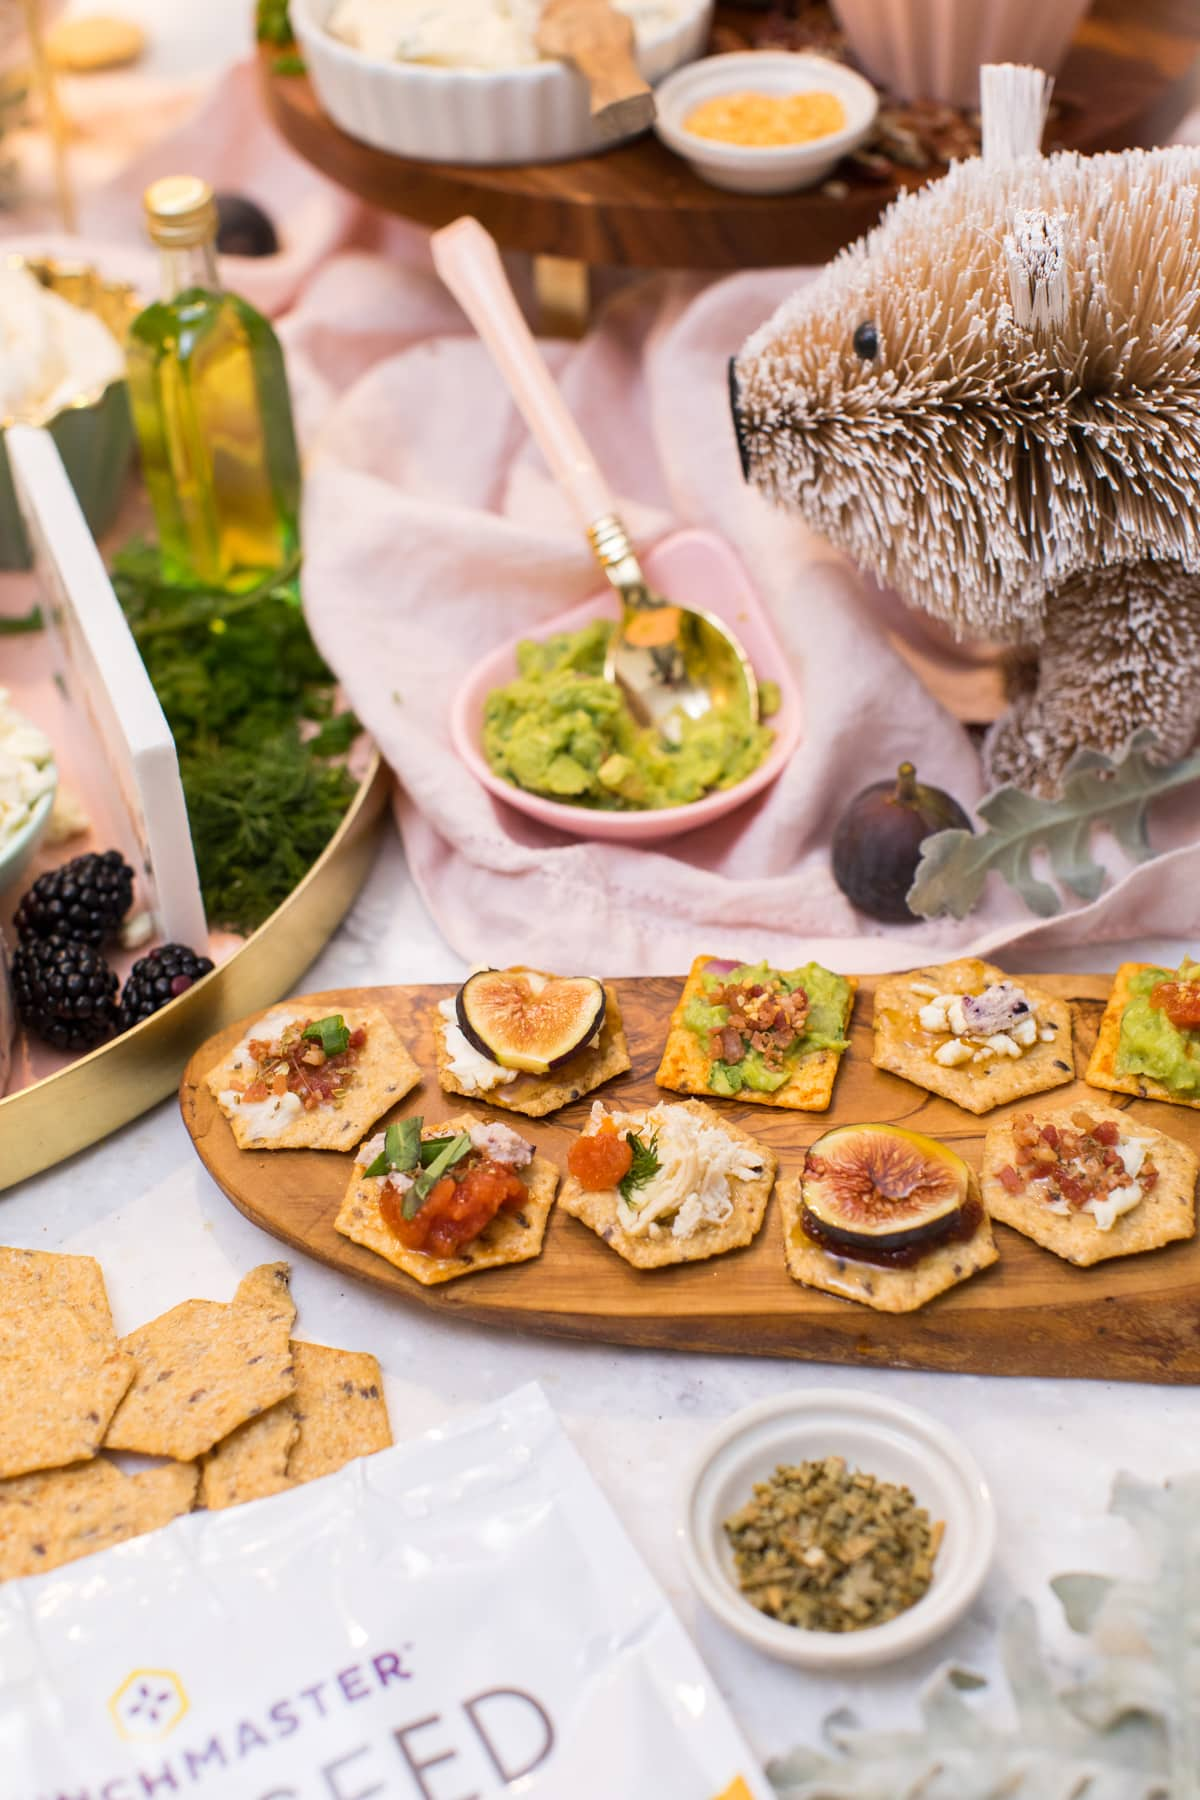 bruschetta ideas - How to Make a Bruschetta Recipe Bar by top Houston lifestyle blogger Ashley Rose of Sugar & Cloth #recipe #bruschetta #bar #ideas #entertaining #howto #easy